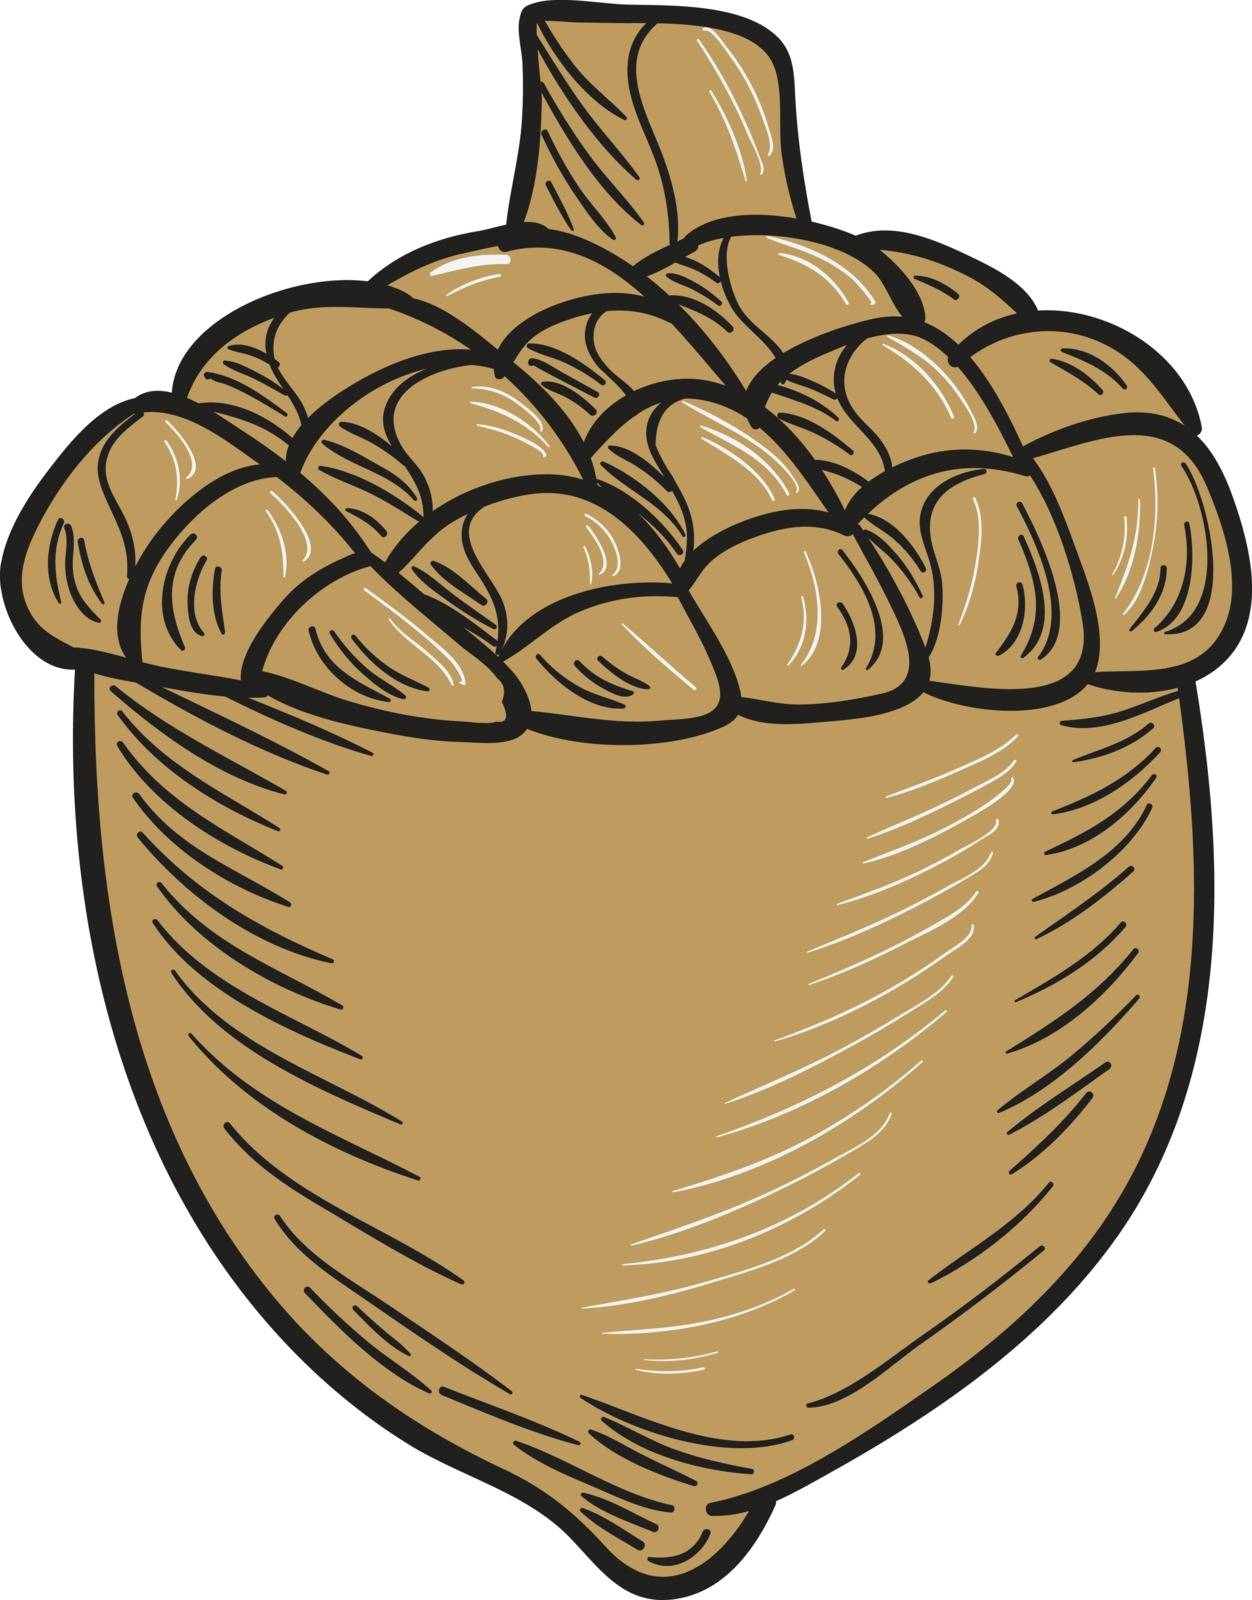 Drawing sketch style illustration of an acorn set on isolated white background.